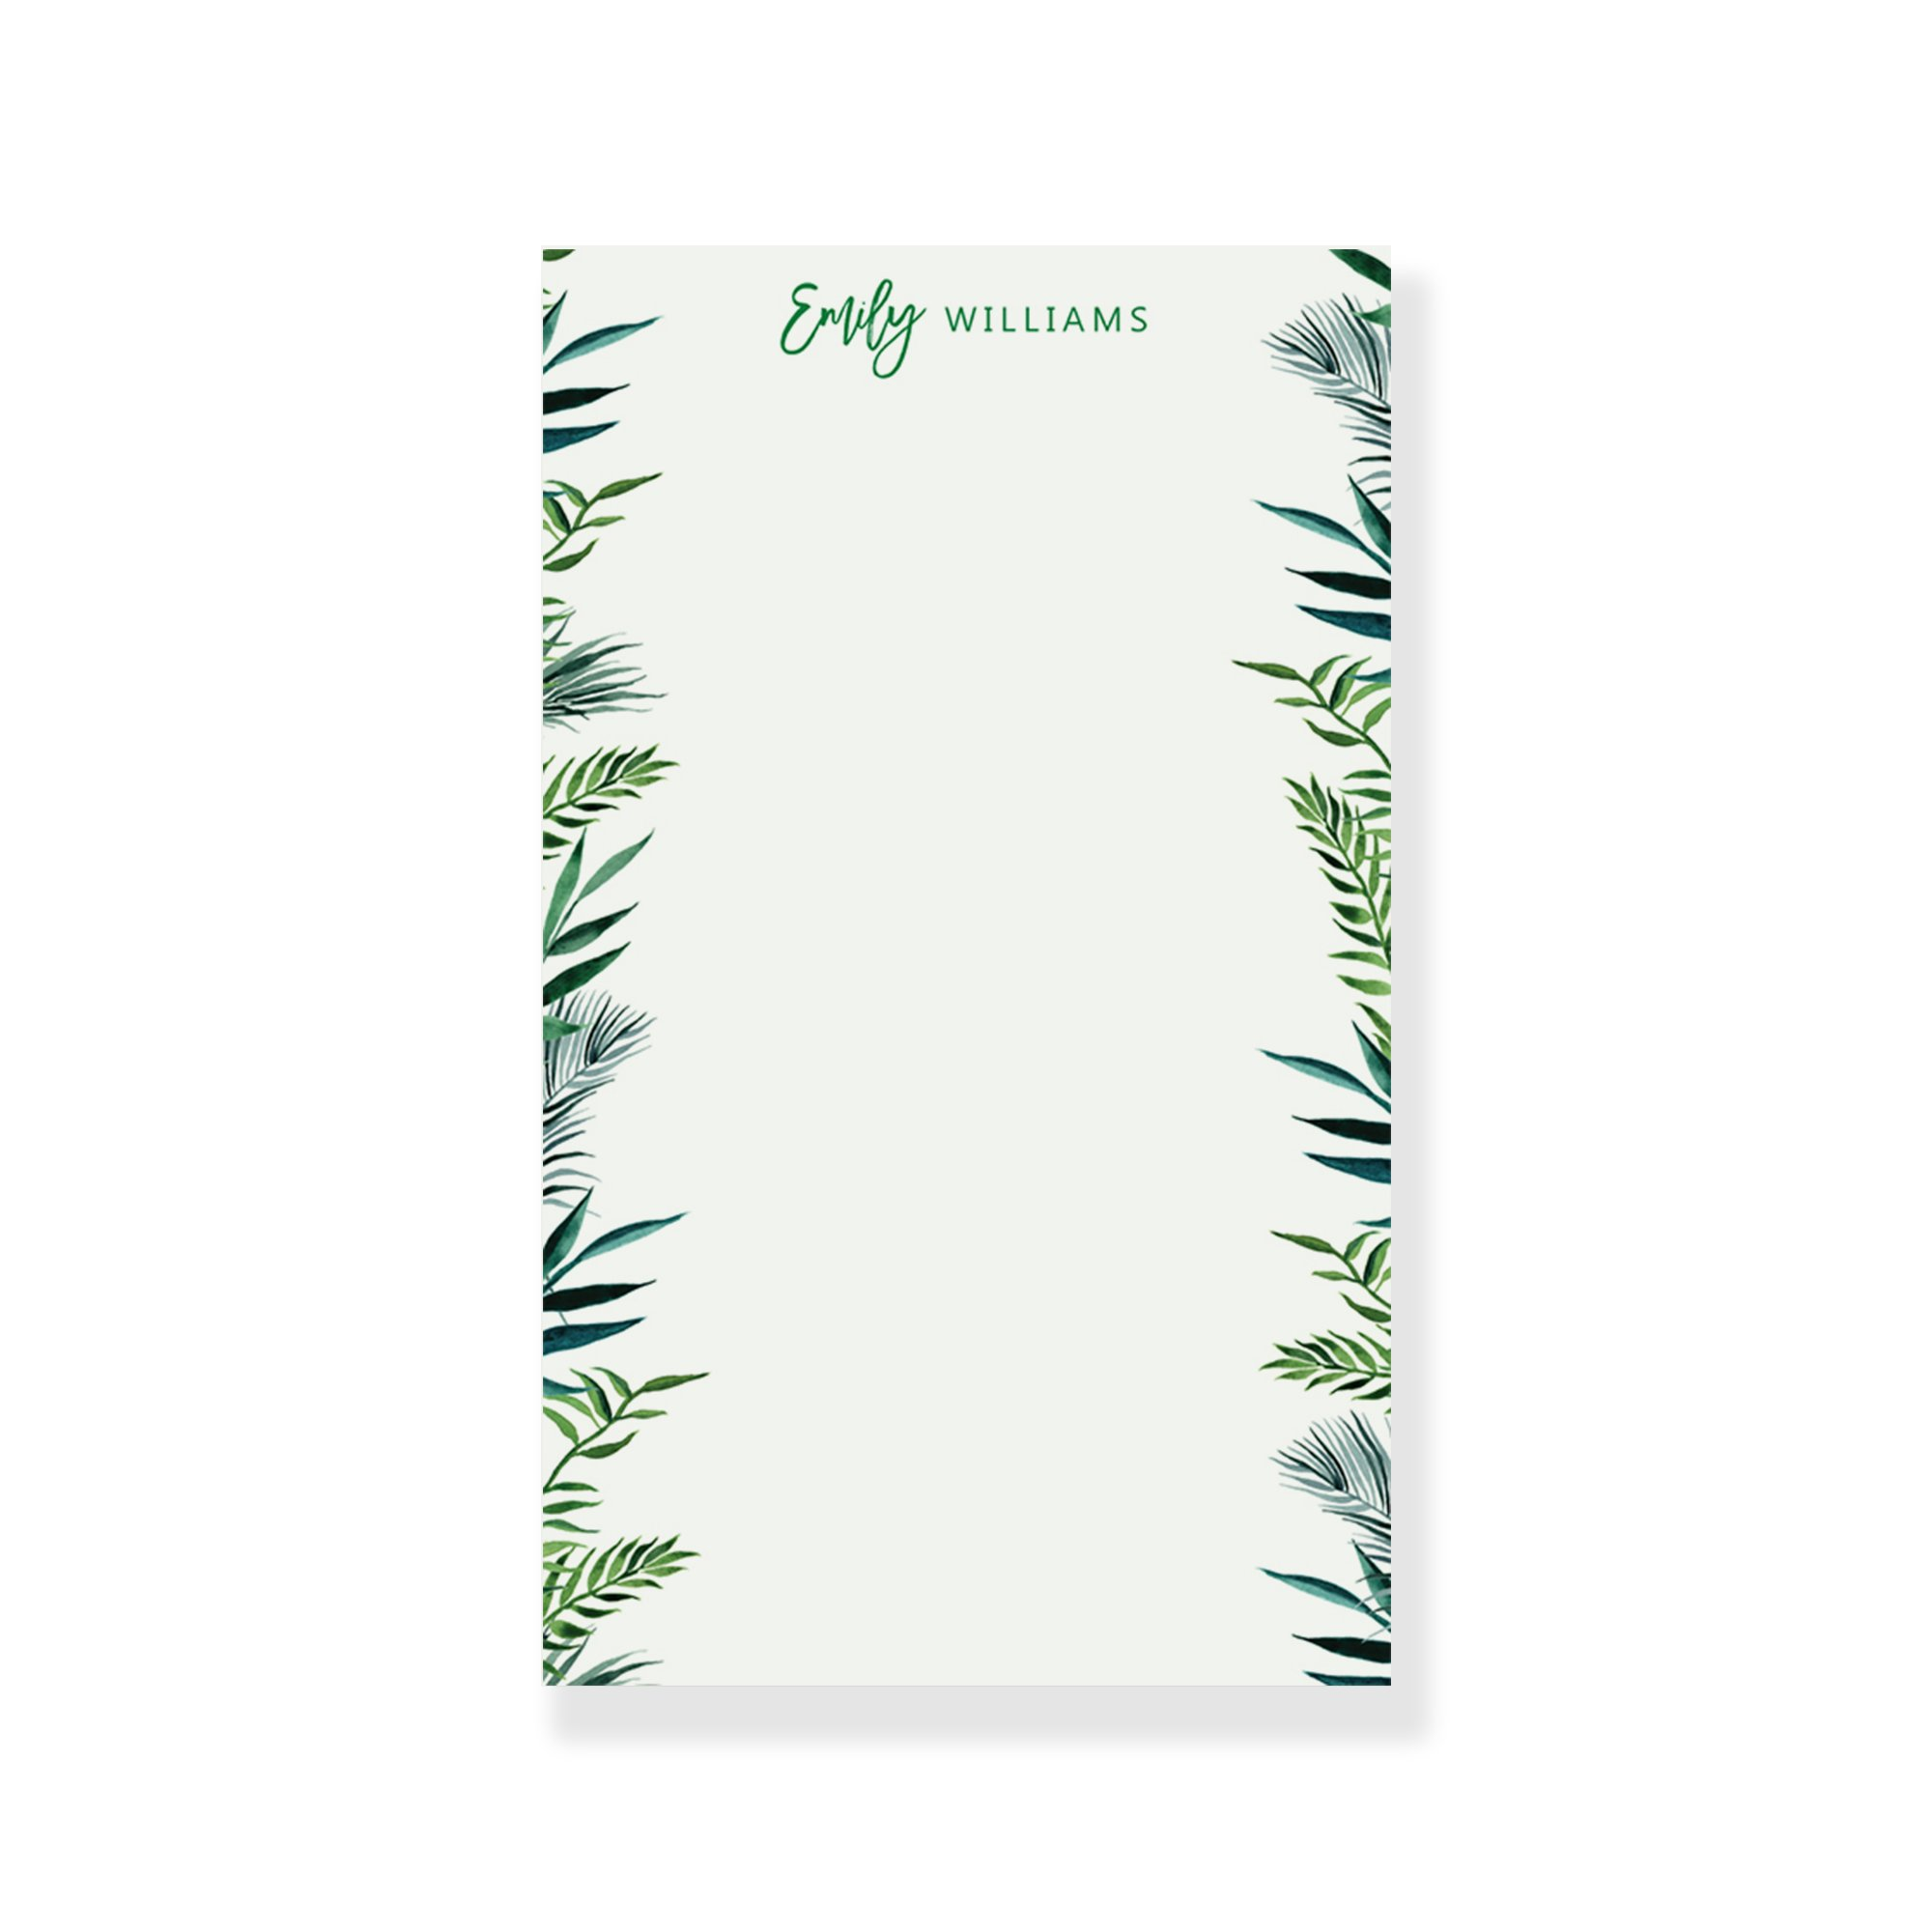 Greenery Notepad, Stationary for Women, Stationary for Men, Personalized Stationary Paper Notepad